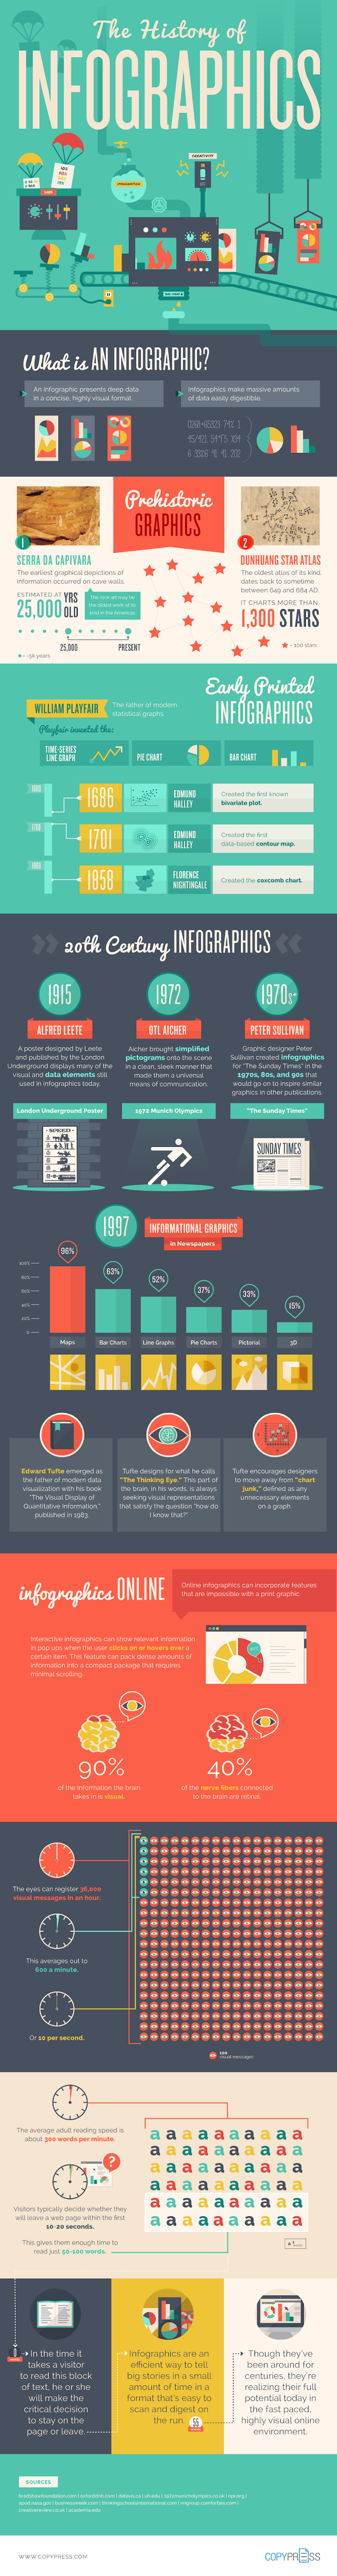 The History of Infographics #infographic #infographics #History #History of Infographics #Graphic Design